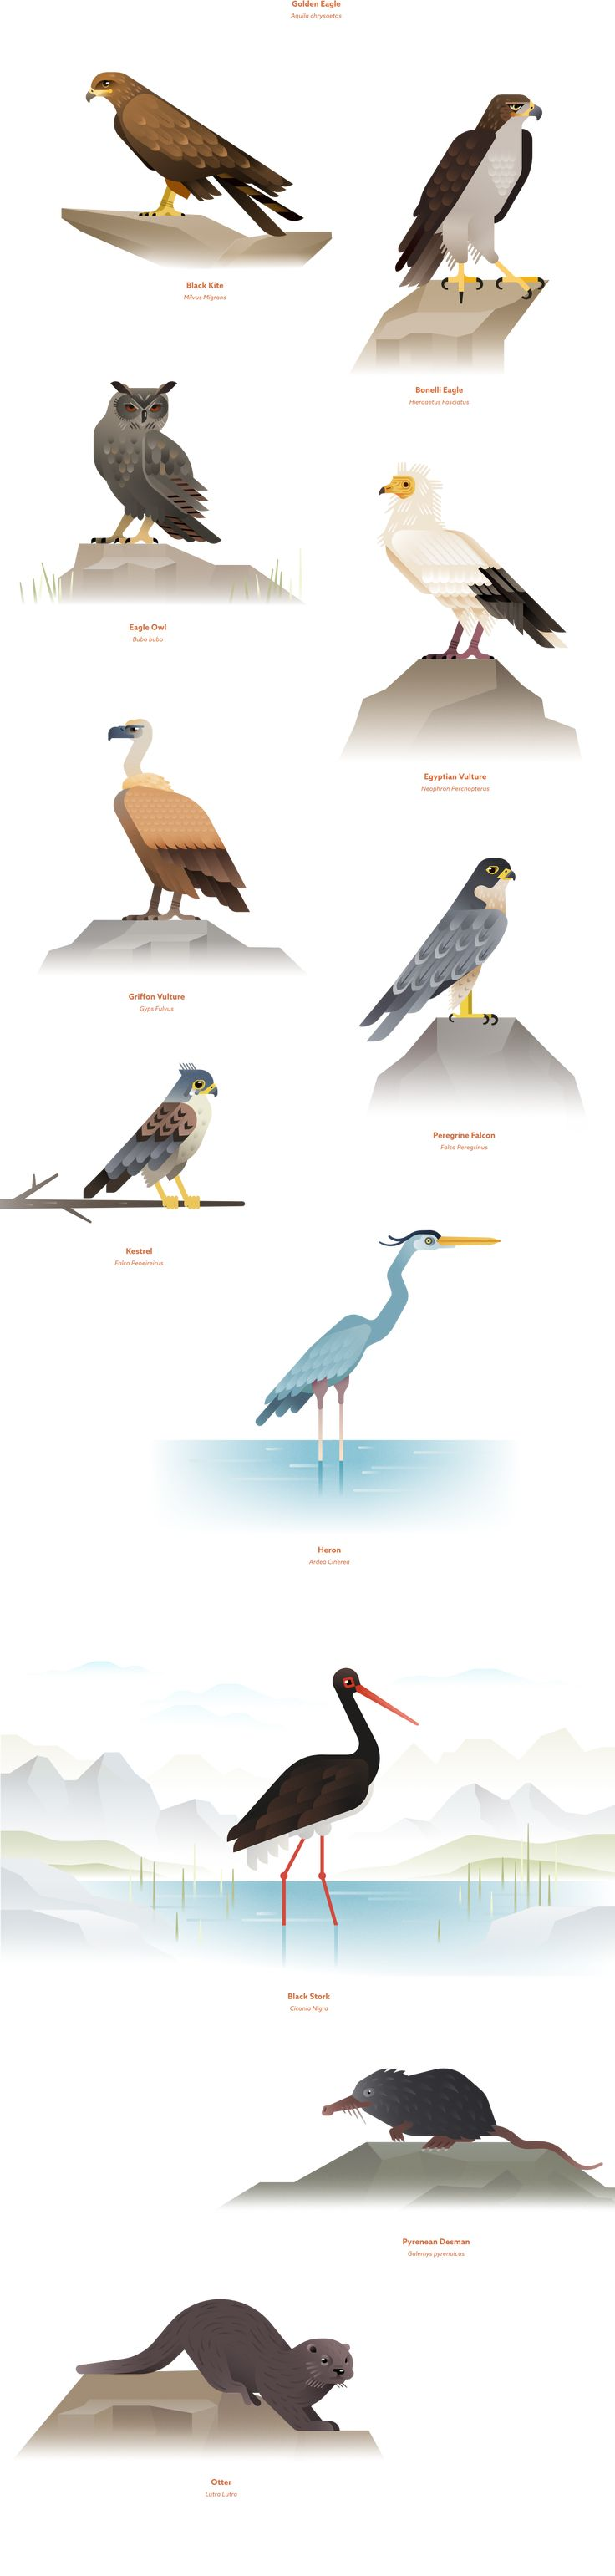 We have been commissioned by Seegno to illustrate the main native animal species…